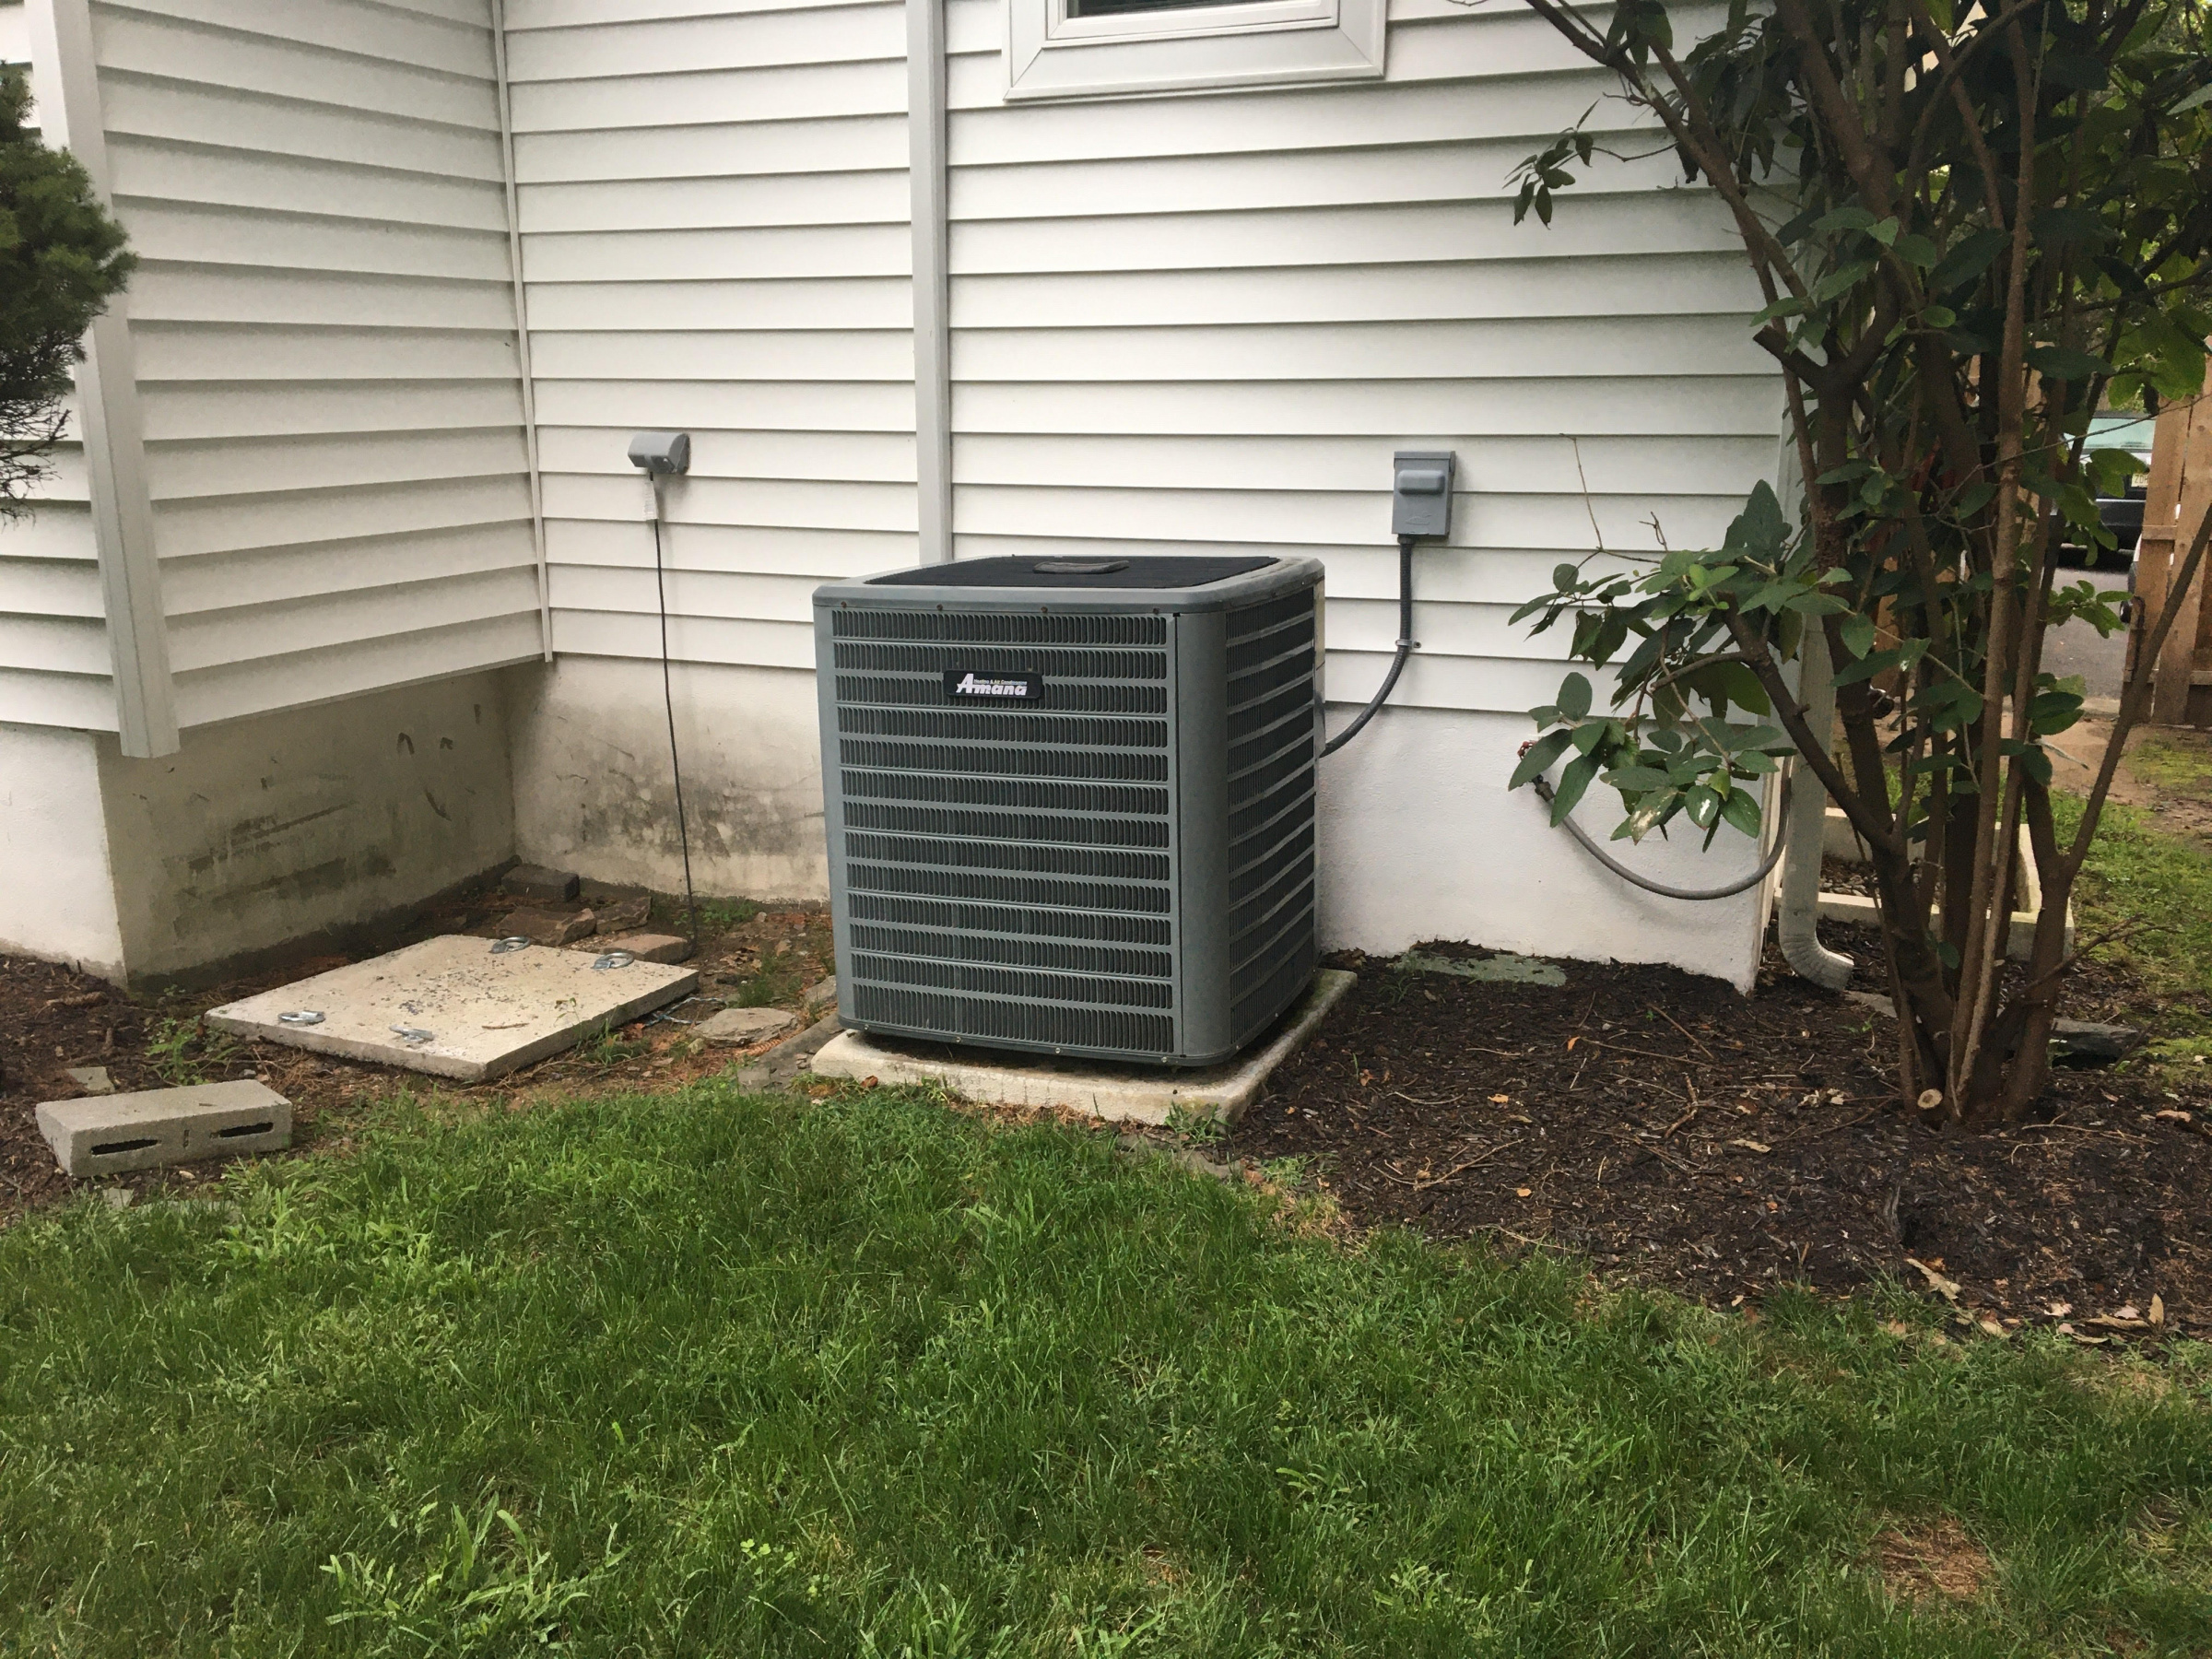 How many tons would you guess this Central AC Unit is? Outdoor portable generator-unnamed-3-.jpg